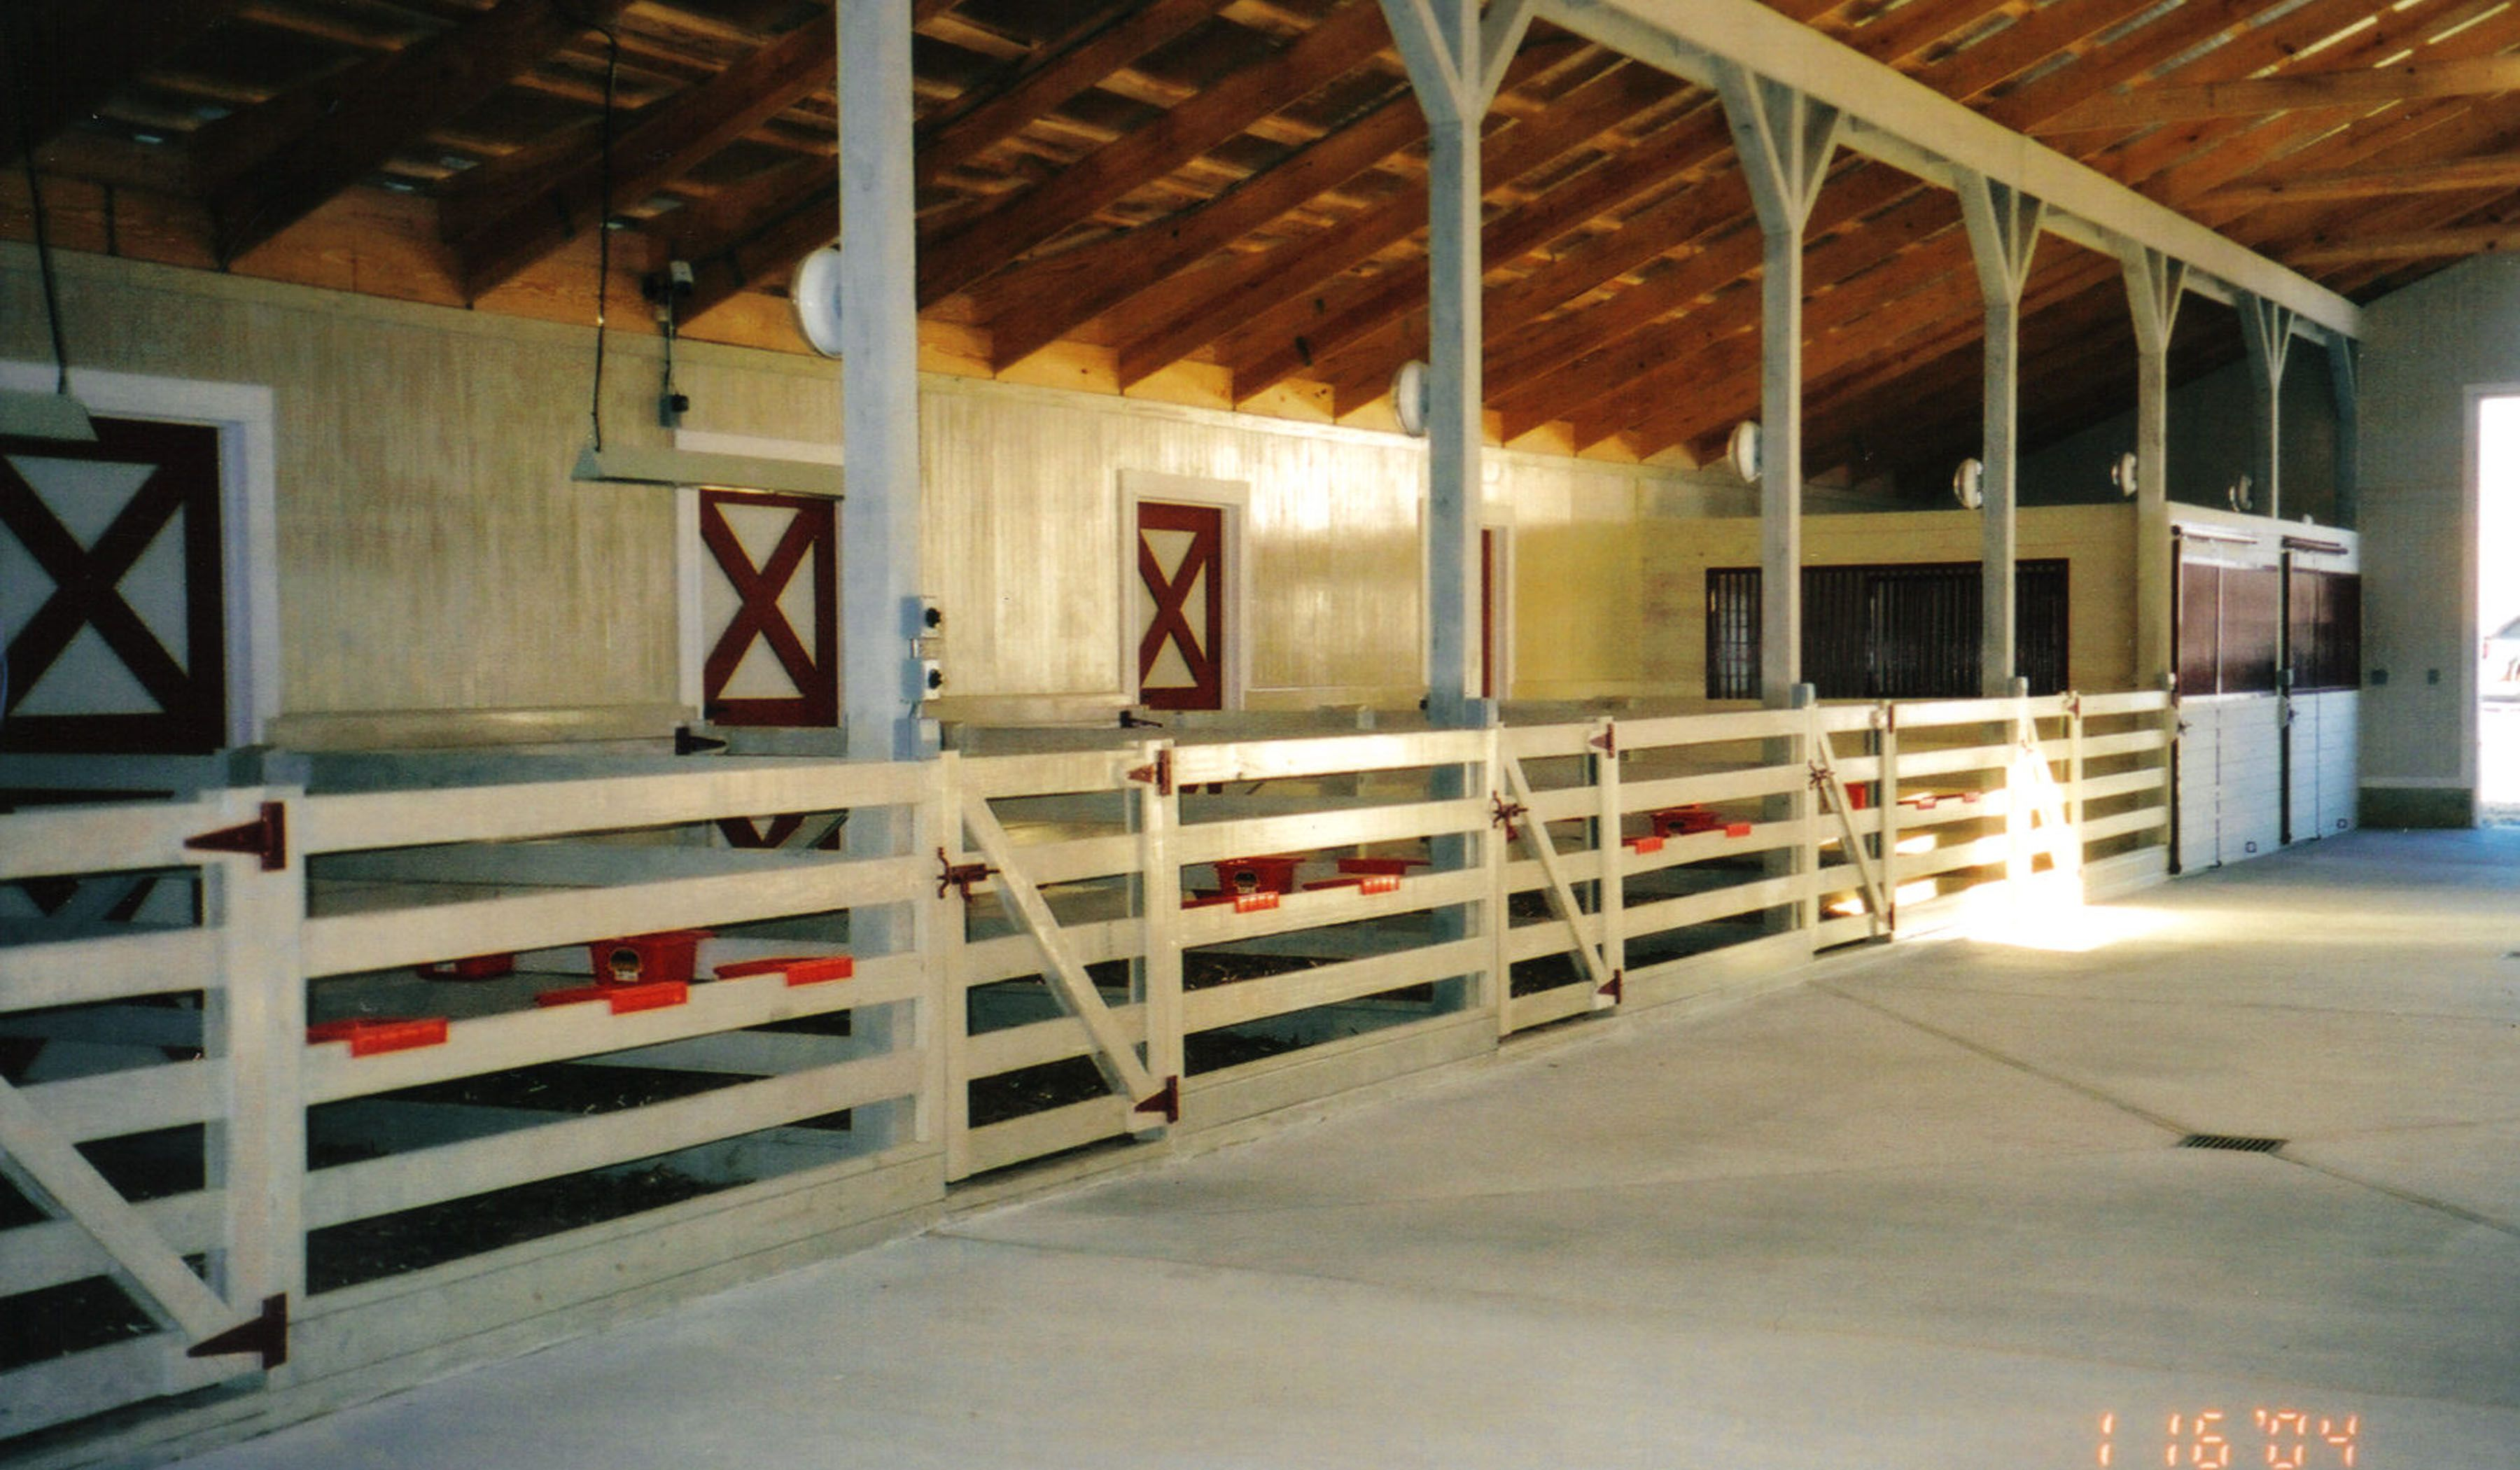 Design Decor Inside Barn Designs With 42 X 108 Horse Barn Interior Design  Decor Inside Barn Designs With 42 X 108 Horse Barn Interior   Horse Barn  Design ...